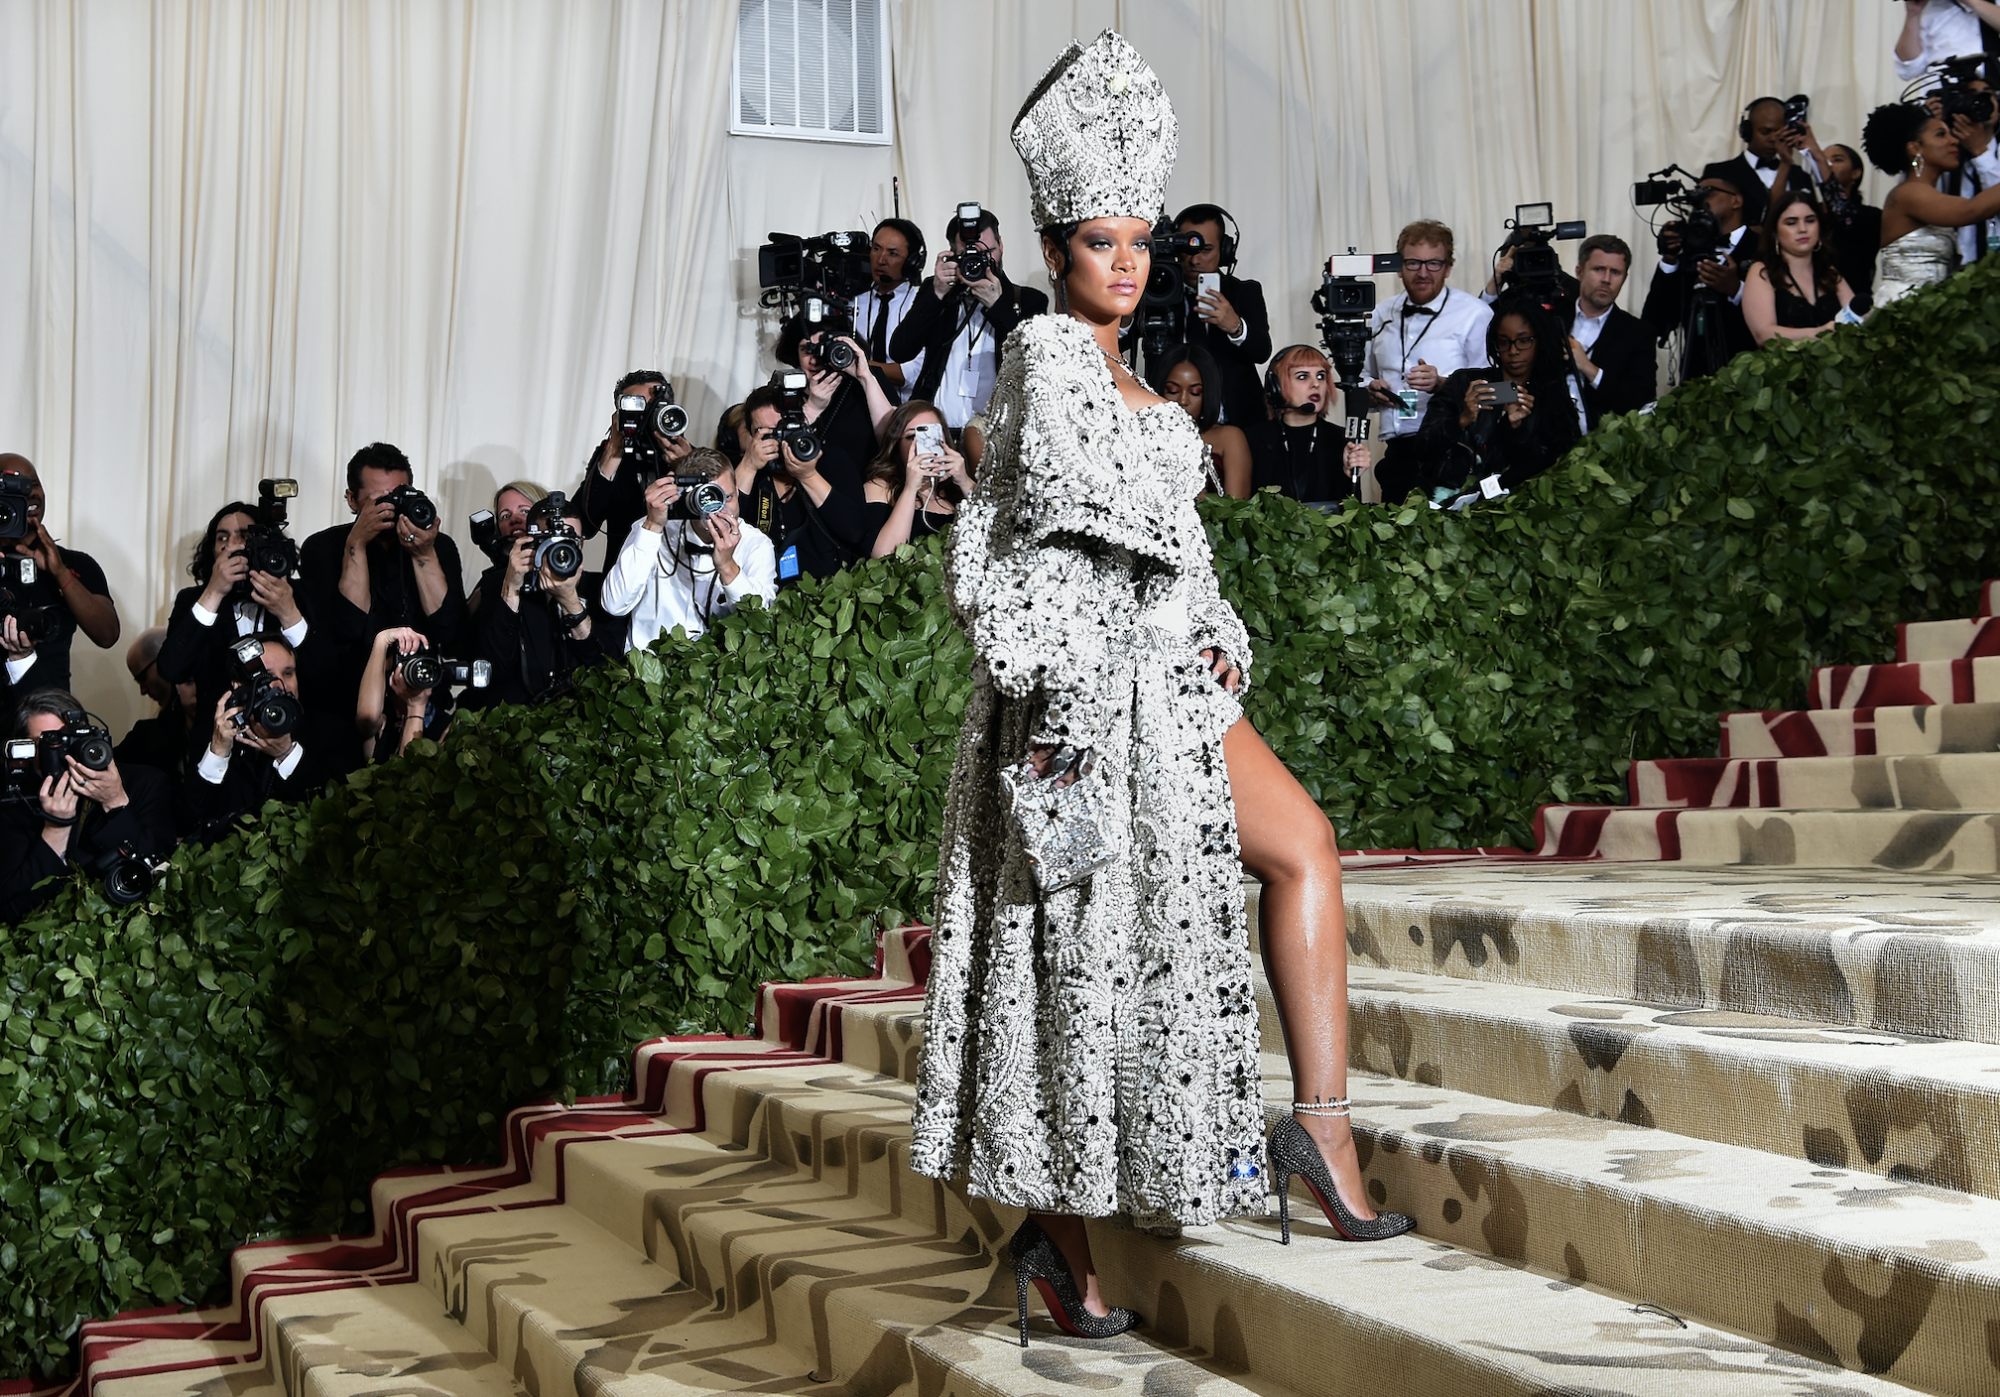 Met Gala Returns With a More Intimate Version in September 2021